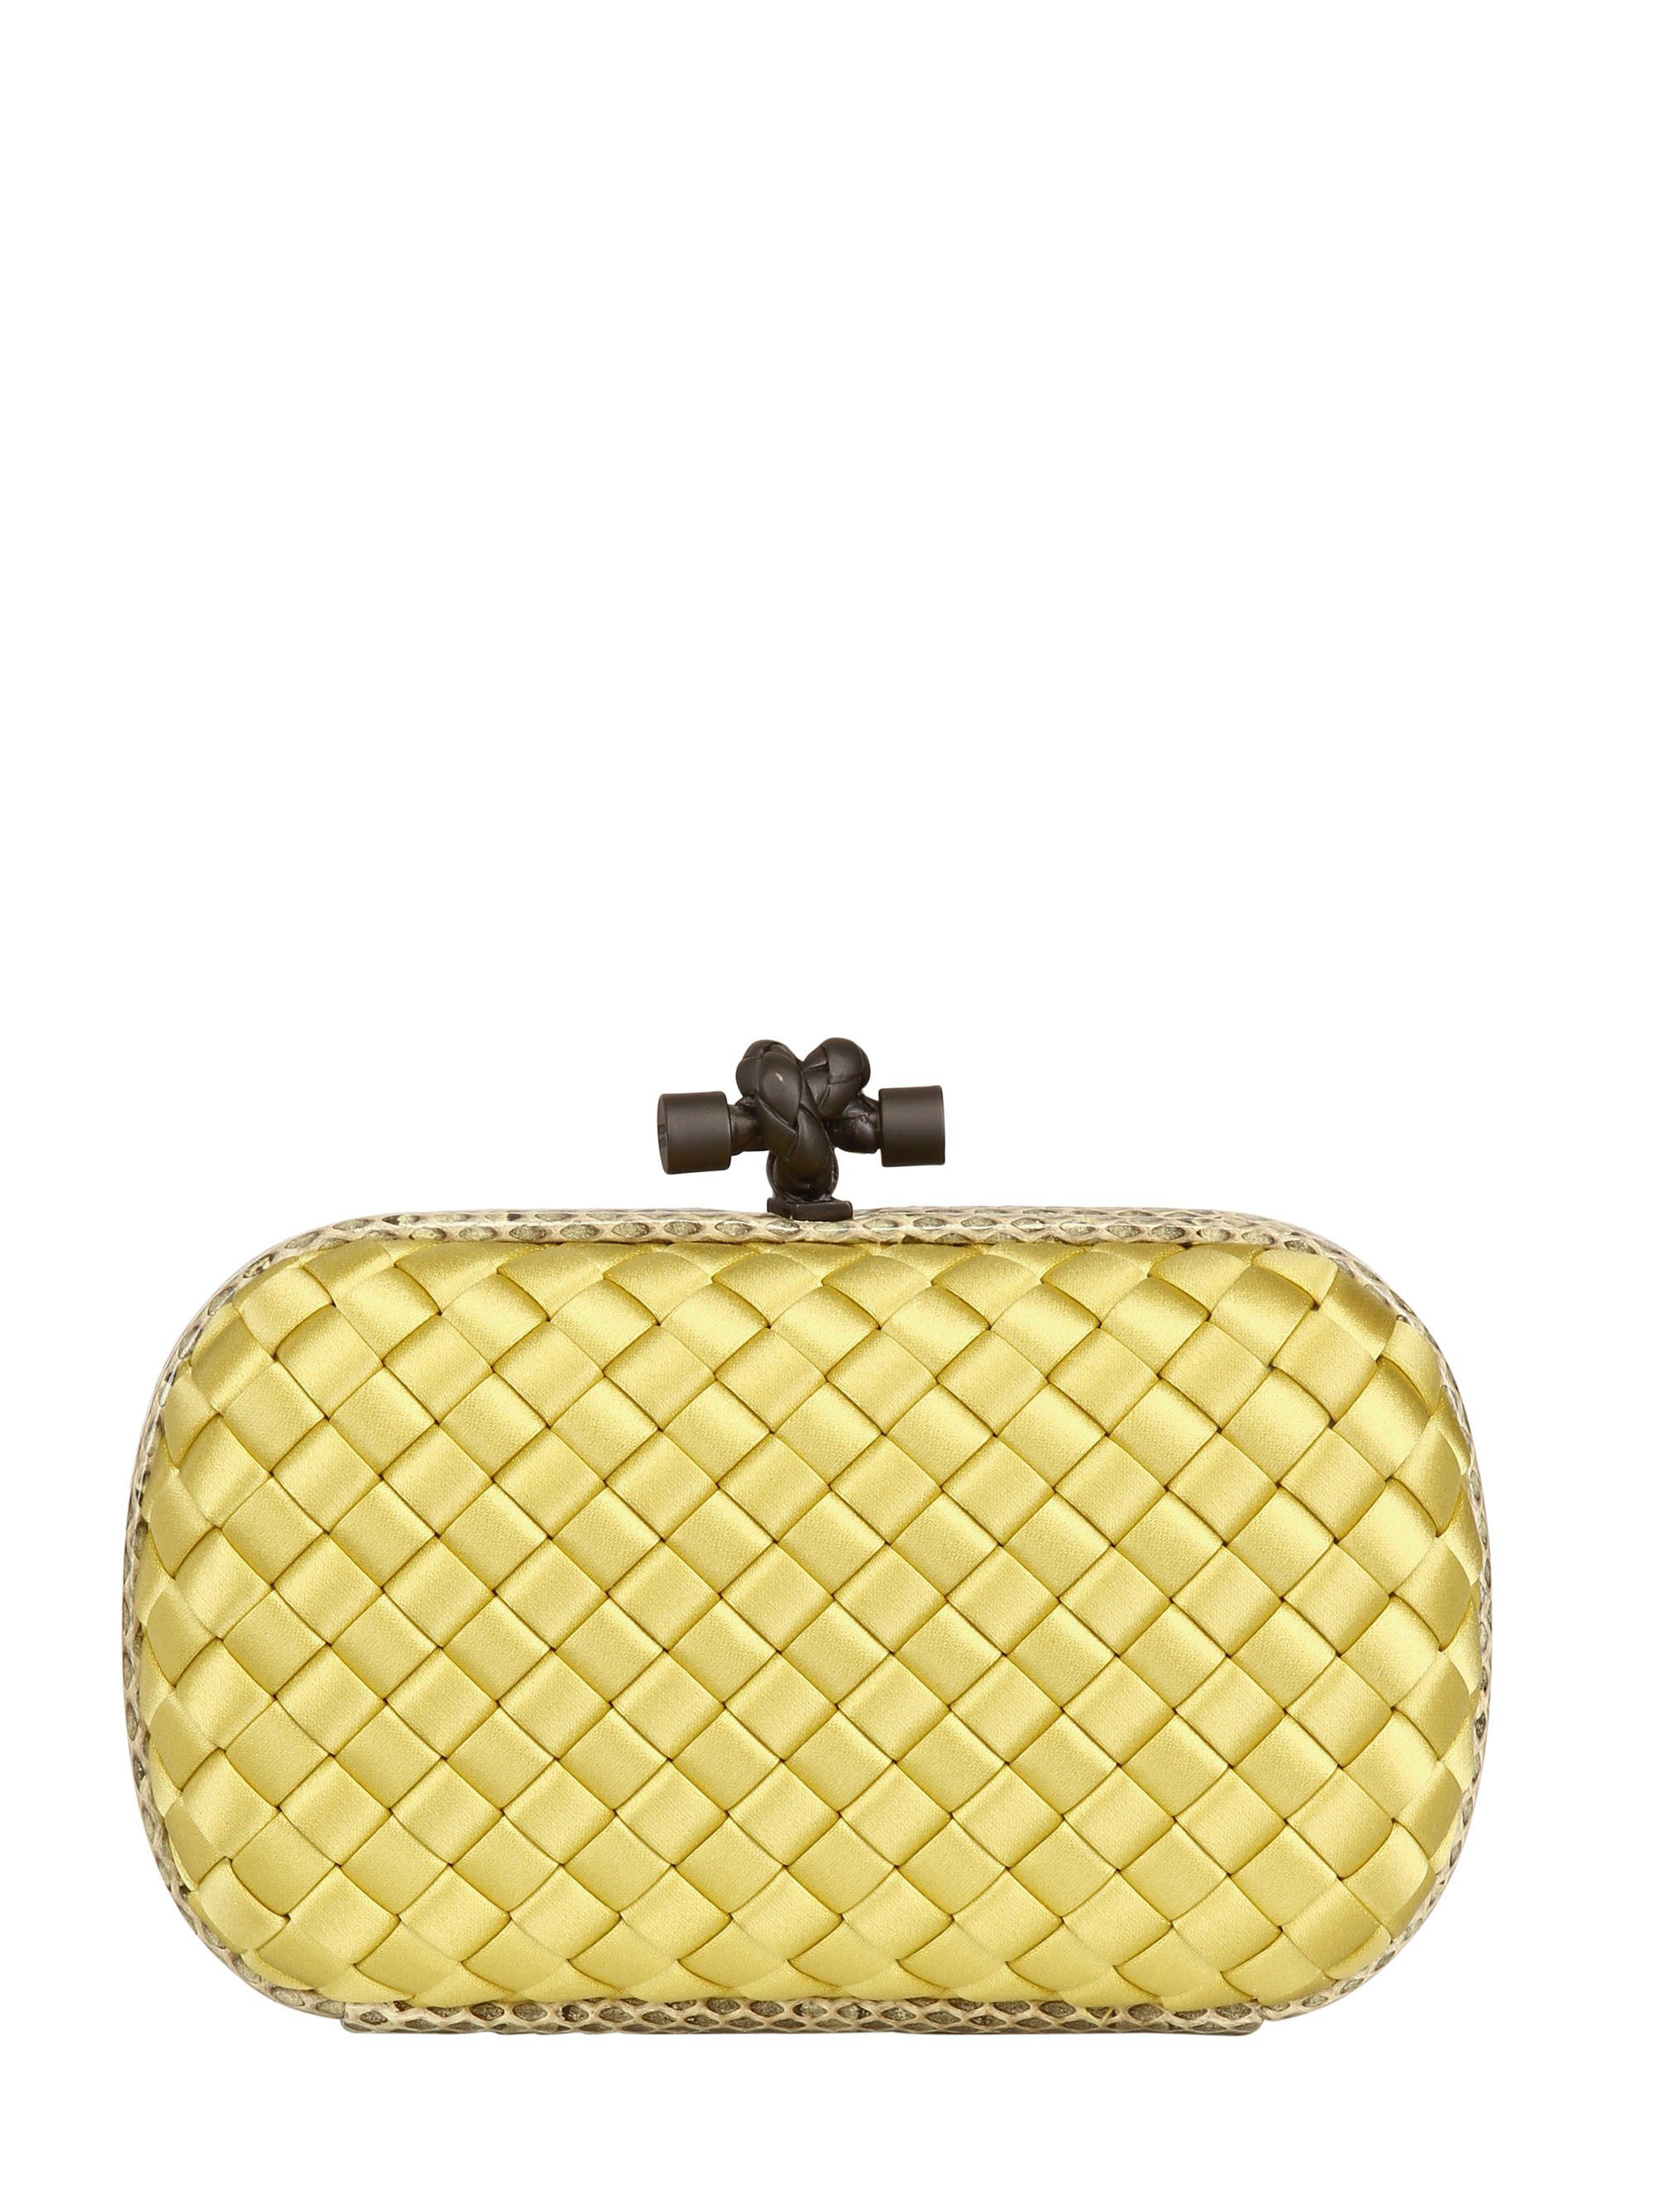 b913d5d6a0f Bottega Veneta Knot Intreccio Satin And Ayers Clutch in Yellow - Lyst